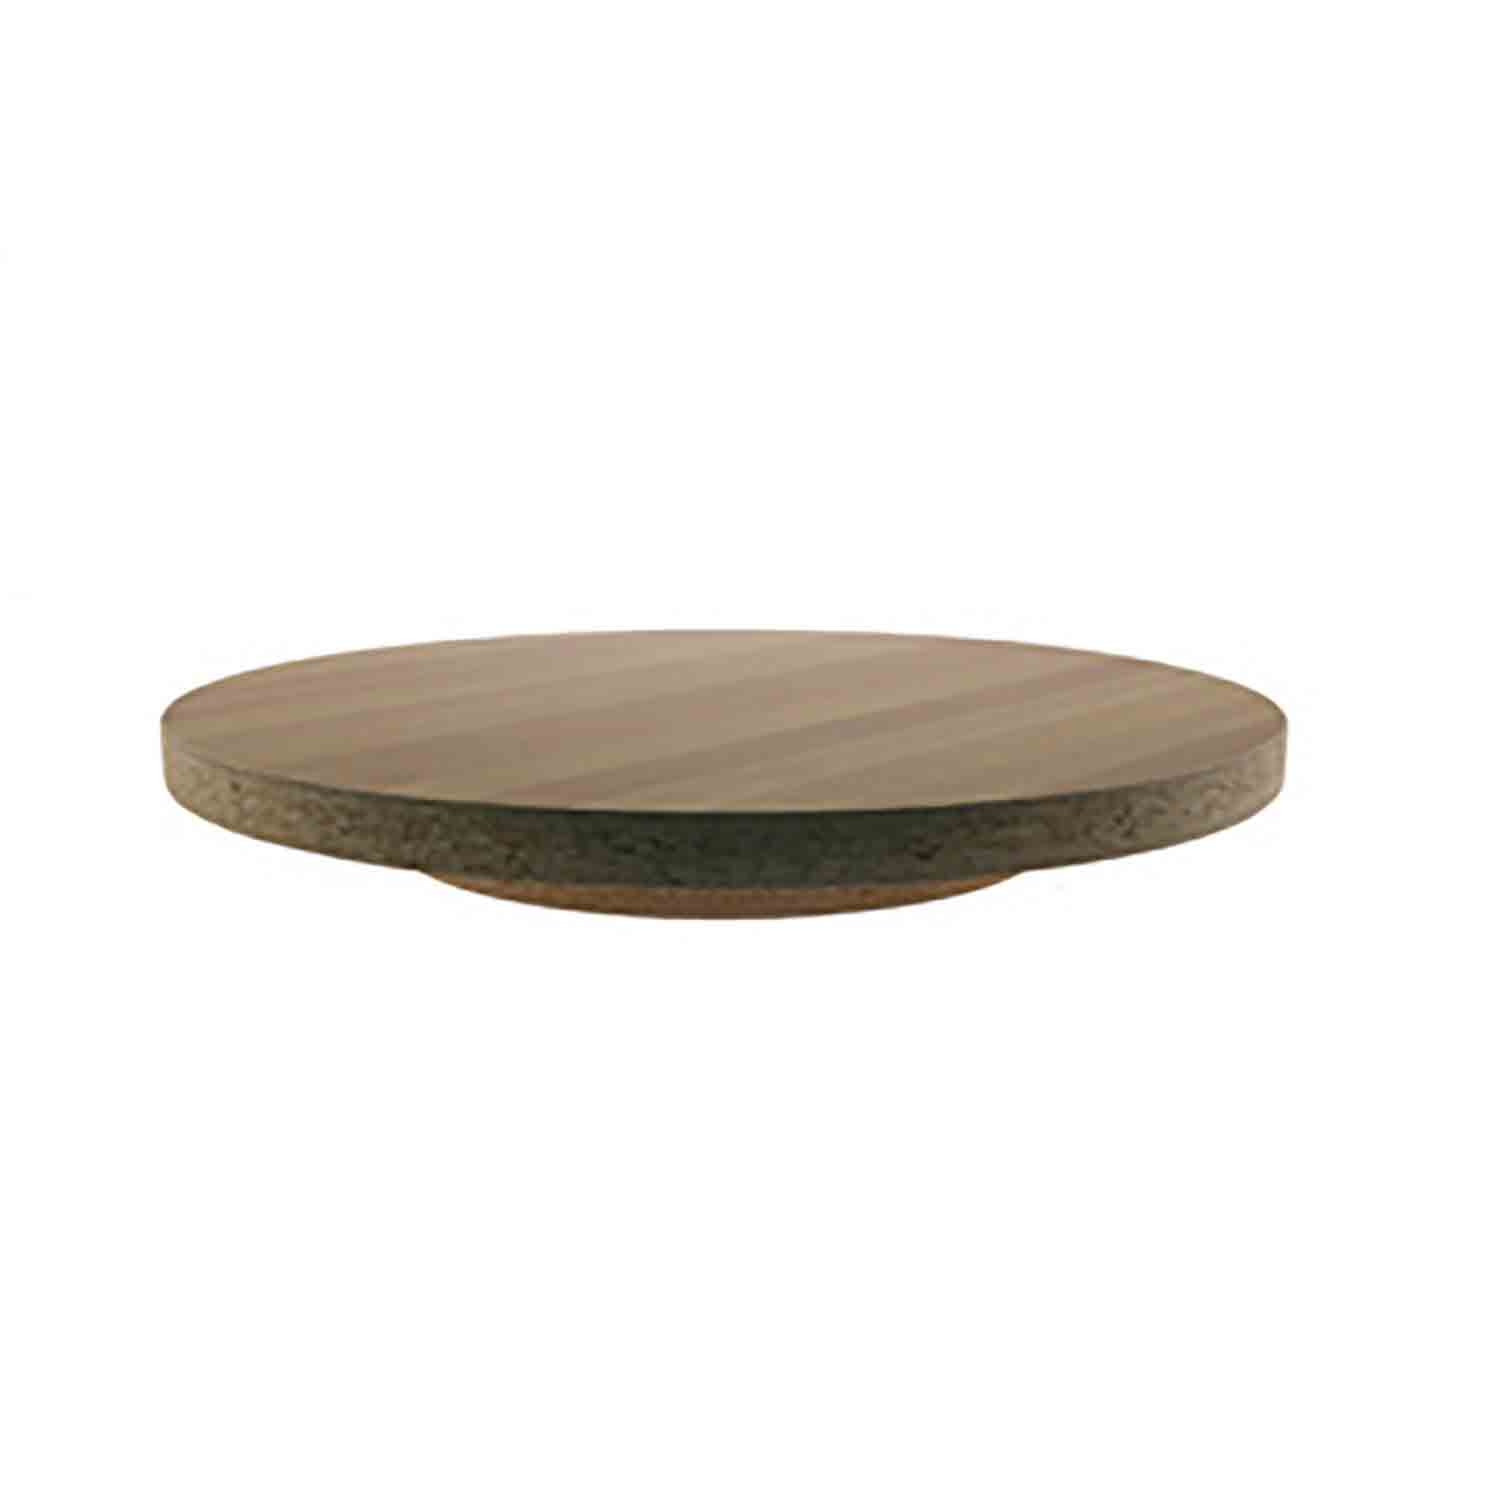 Wooden Laminate Turntable